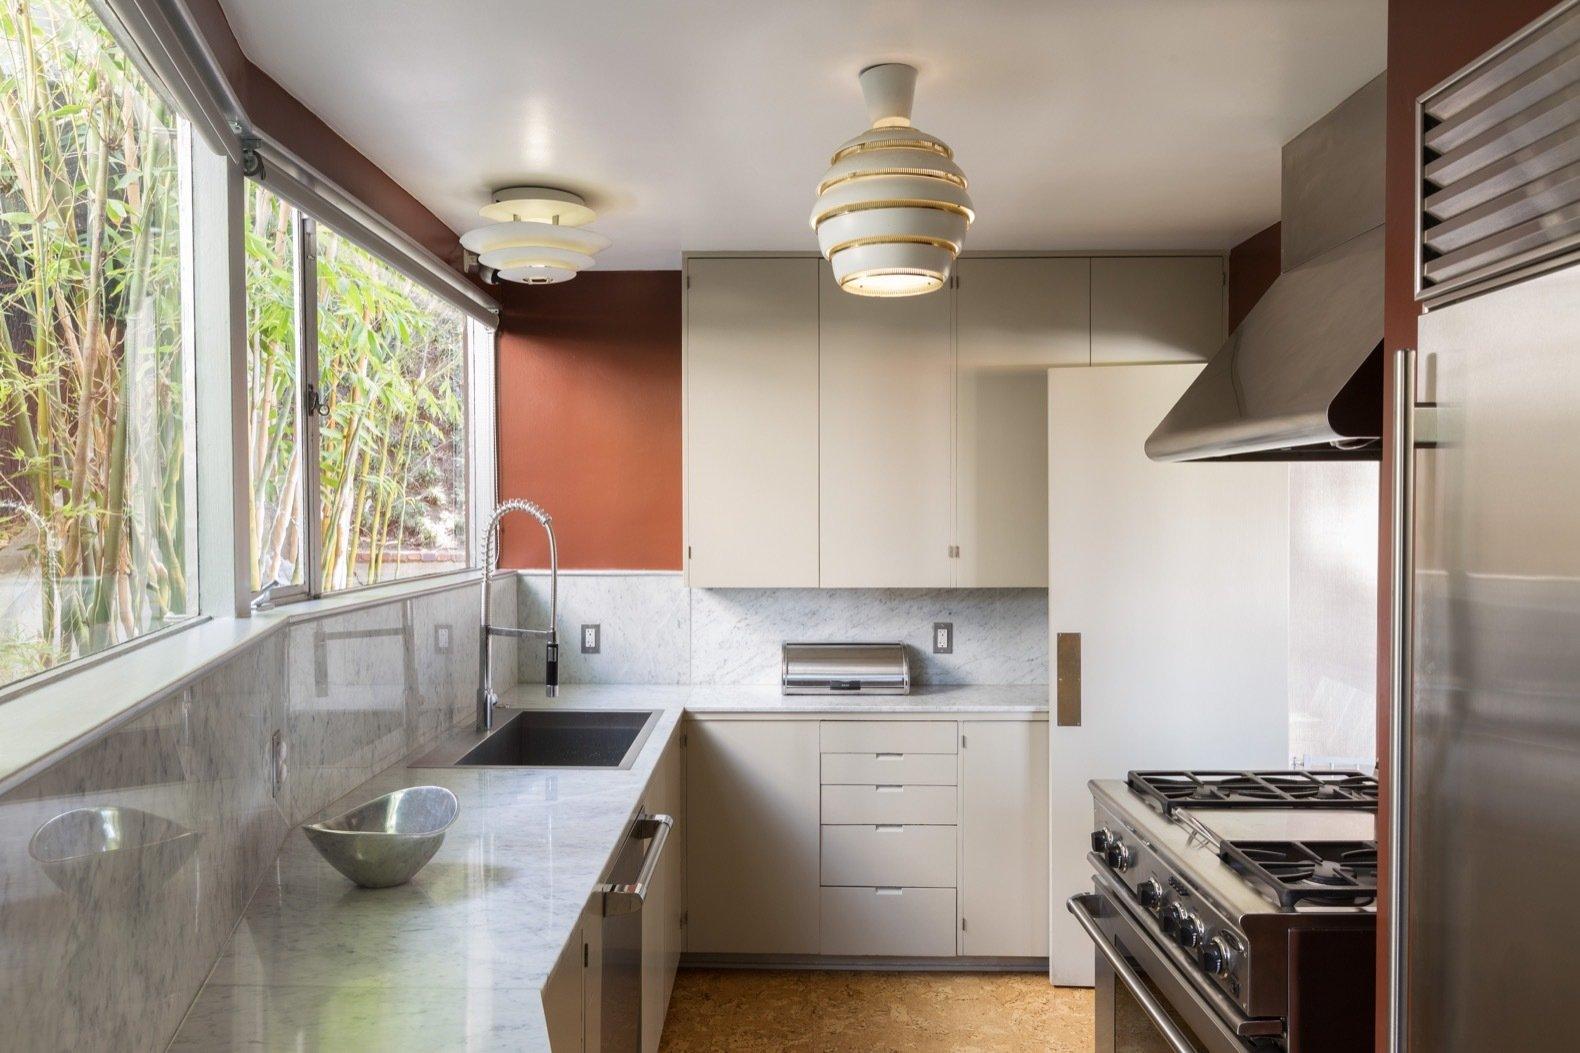 Kitchen, Ceiling Lighting, Laminate Counter, Cork Floor, Refrigerator, Range, Drop In Sink, and Range Hood The kitchen features cork flooring and an Alvar Aalto Beehive pendant lamp.  Photo 6 of 15 in Calling All Richard Neutra Fans—His Bonnet House in L.A. Hits the Market at $1.8M